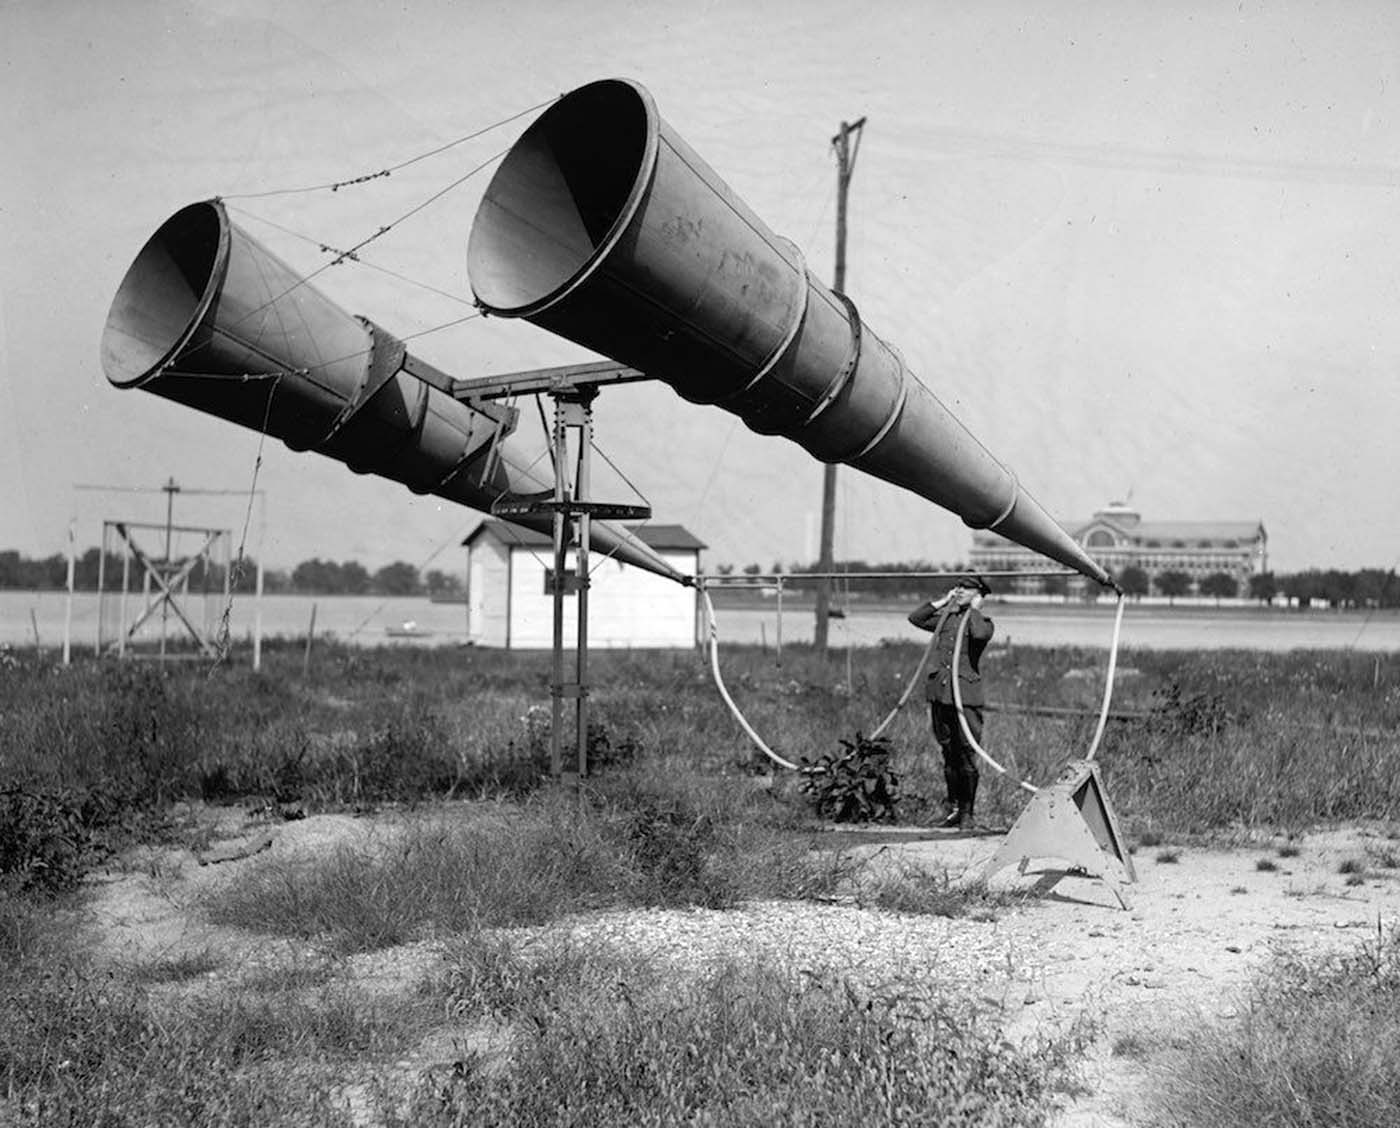 Aircraft engines produced unprecedented sound, so in order to hear them at a distance, the war efforts developed listening devices. Bolling Air Field horn amplifiers. 1921.